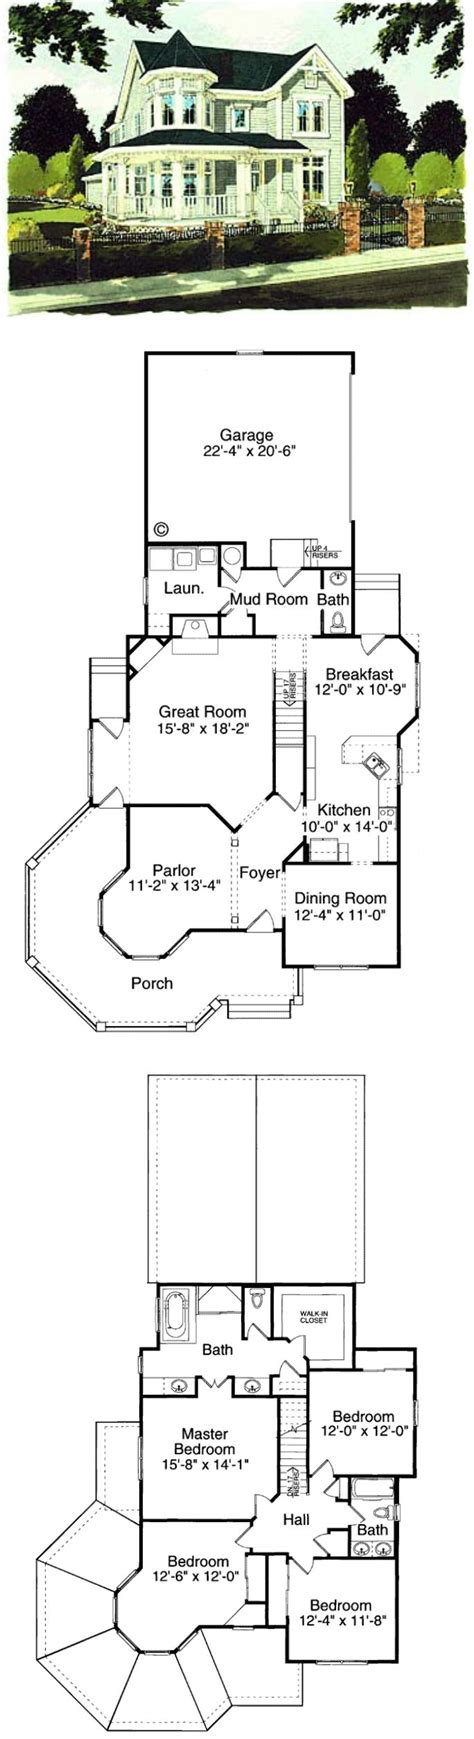 6 bedroom victorian house plans 6 bedroom victorian house plans house plans luxamcc luxamcc